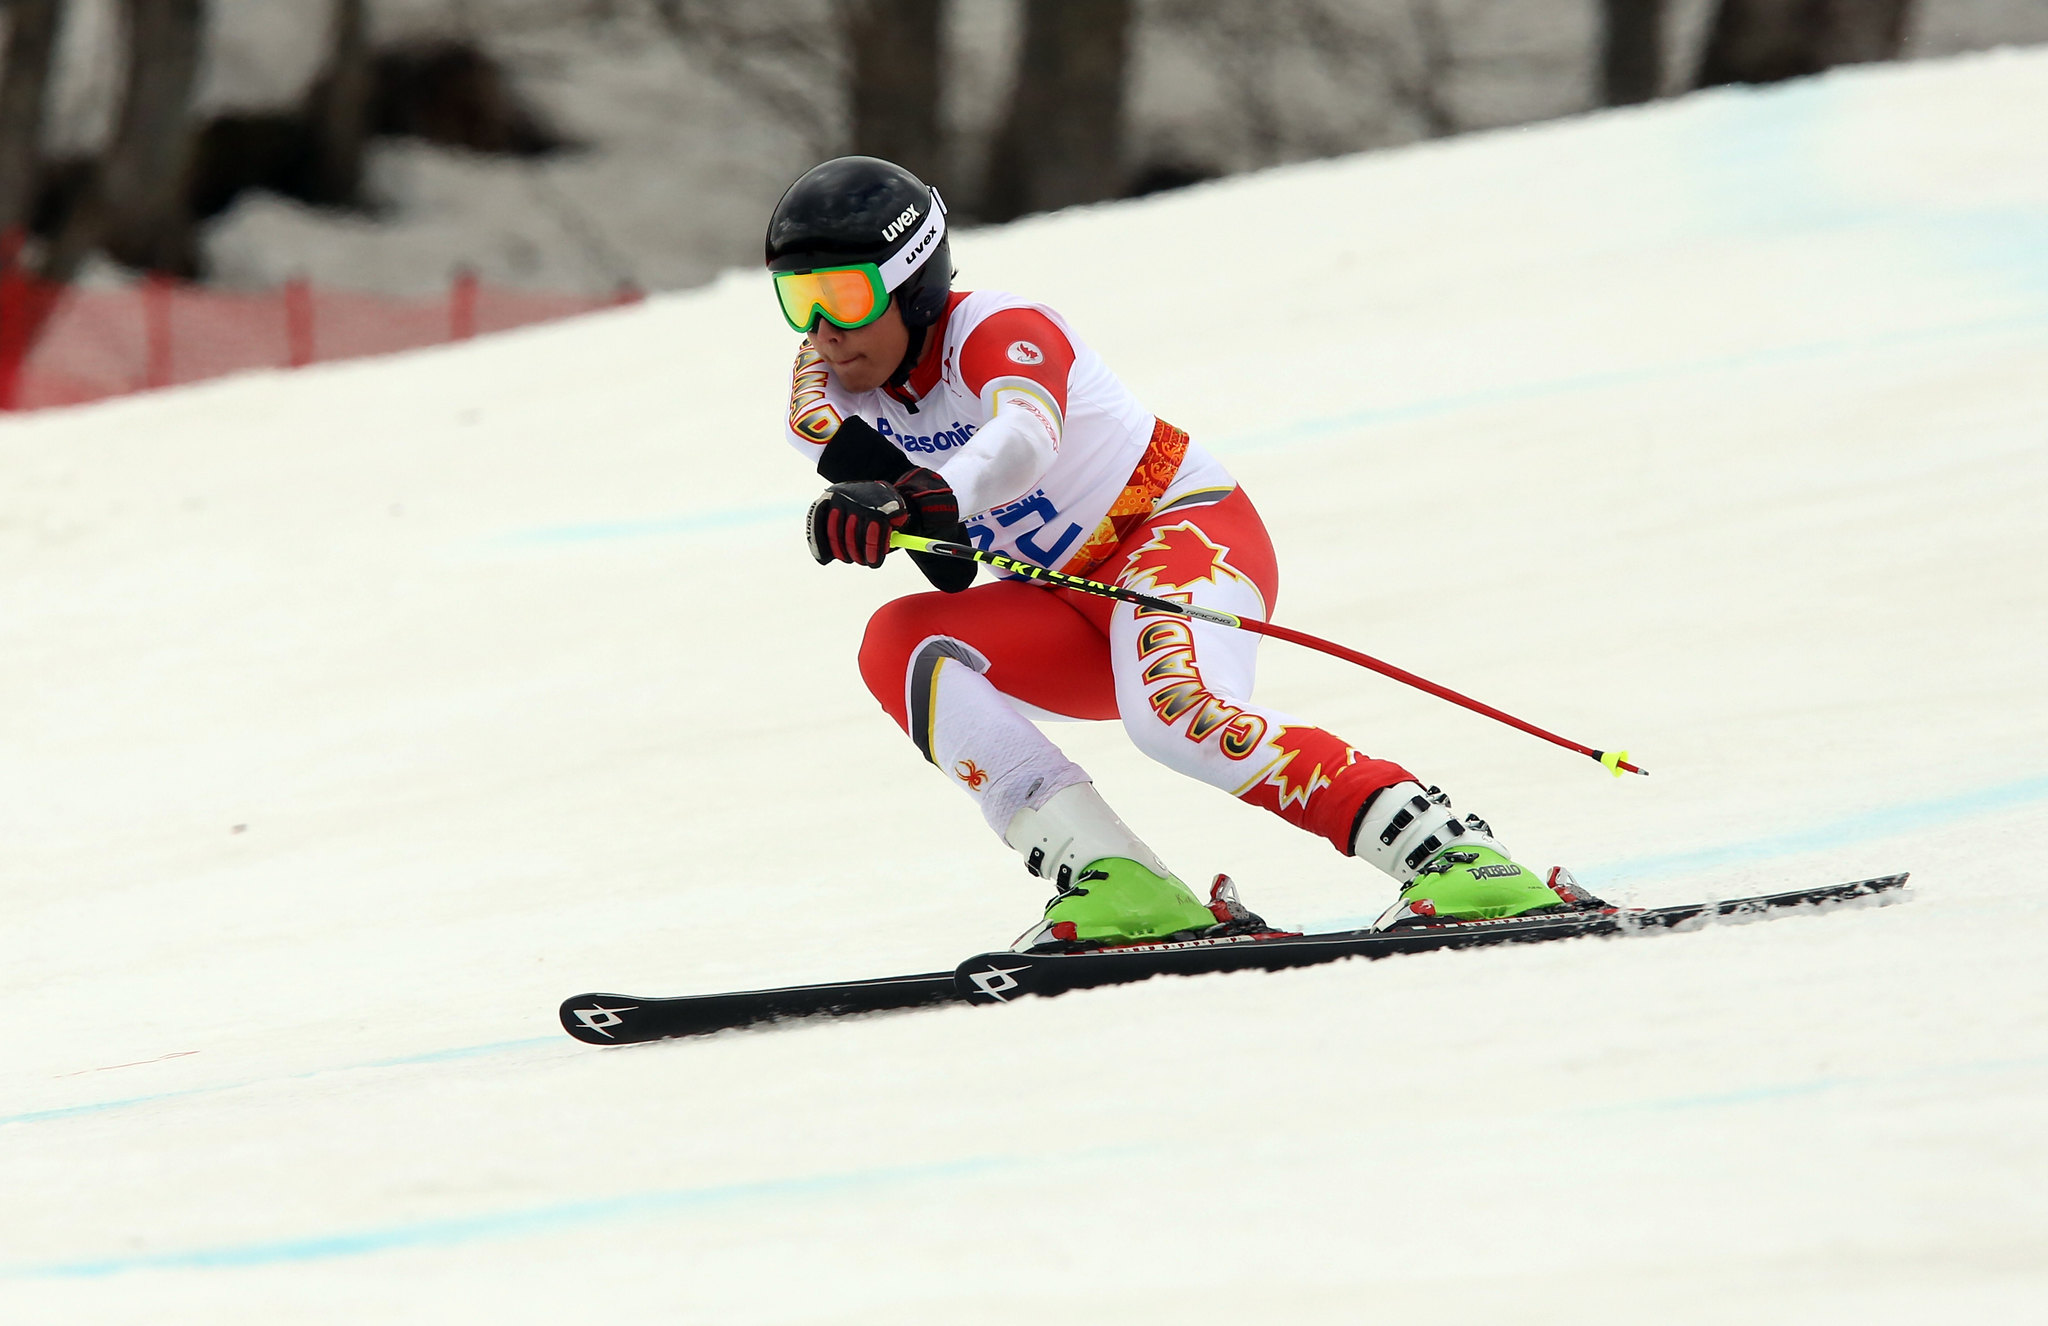 Kirk Schornstein competes in the Super-G at the 2014 Paralympic Winter Games in Sochi, RUS